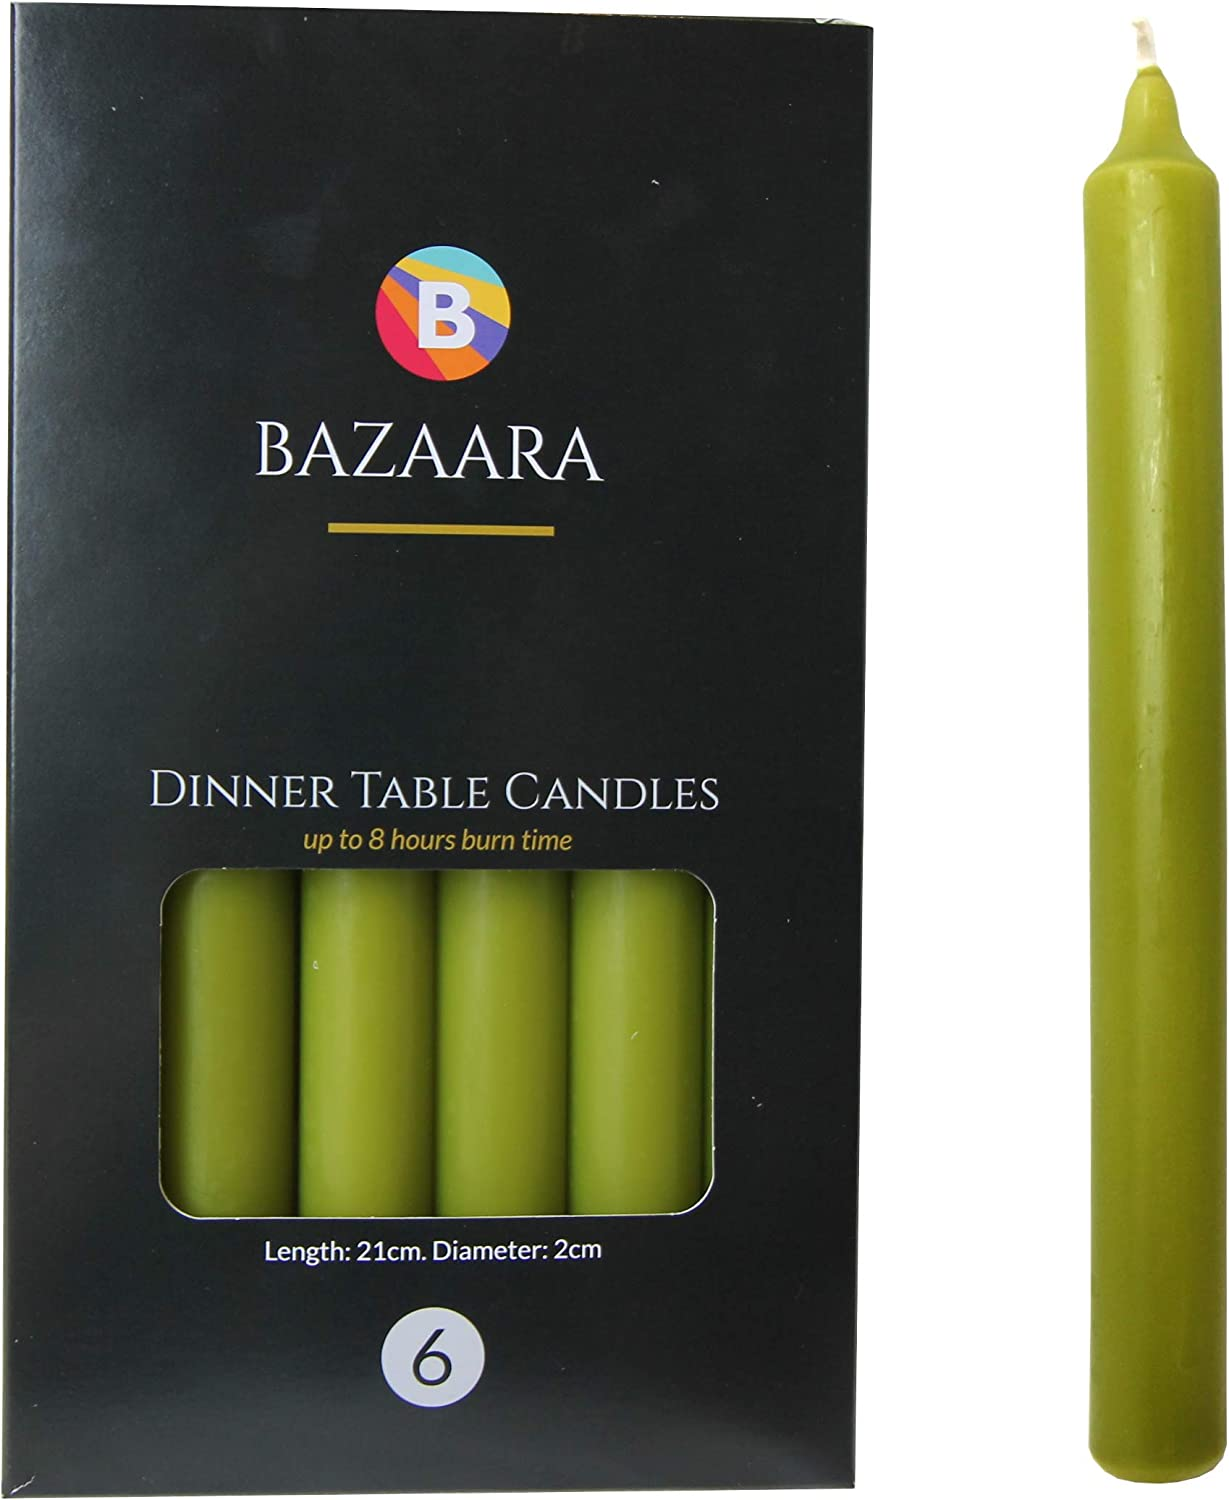 Tapered Dinner Bistro Style Candles Non-Drip Clean Burn Candle High Quality